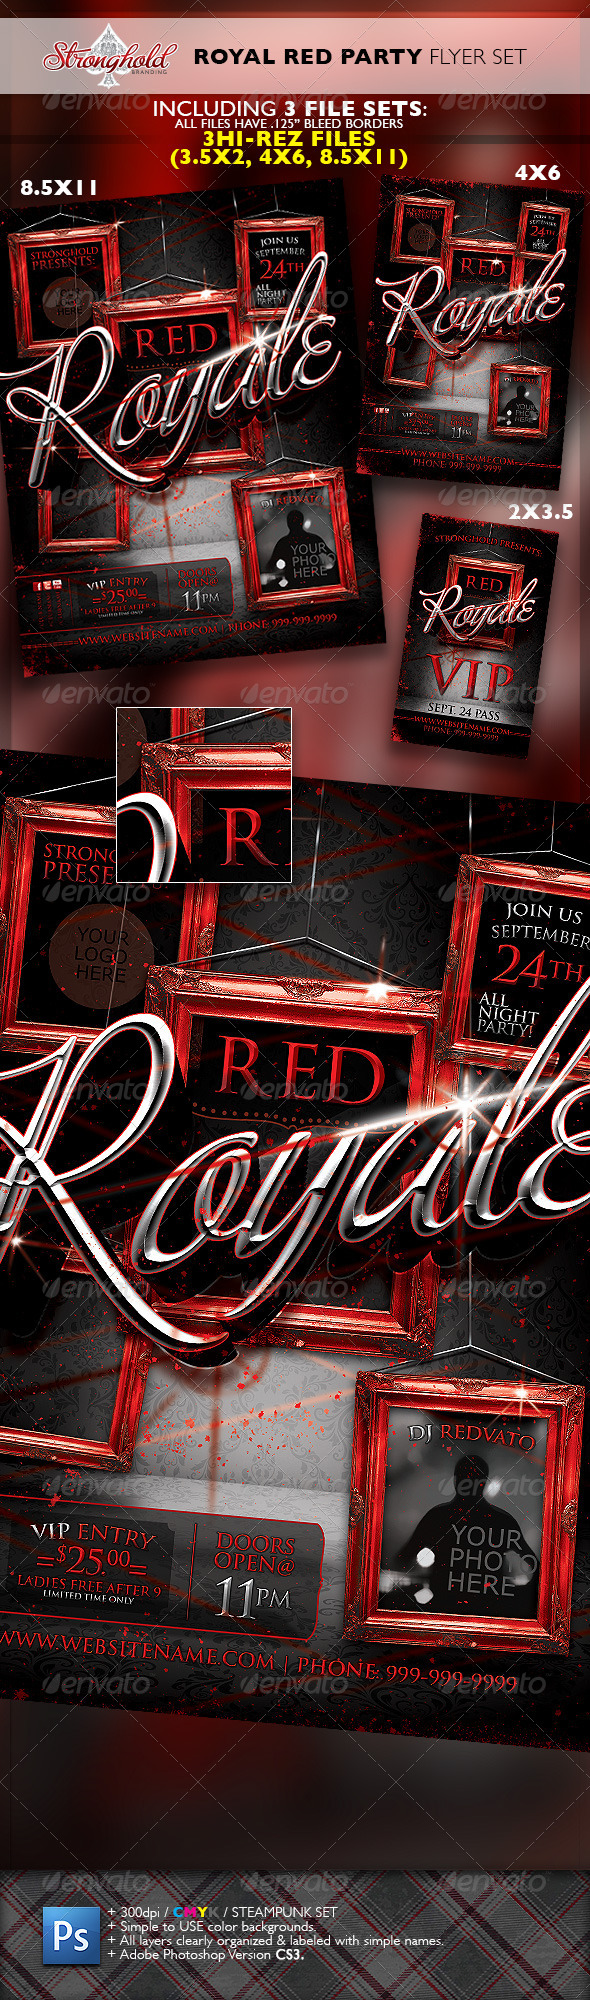 Royal Red Party VIP Event Flyer Template Set - Events Flyers